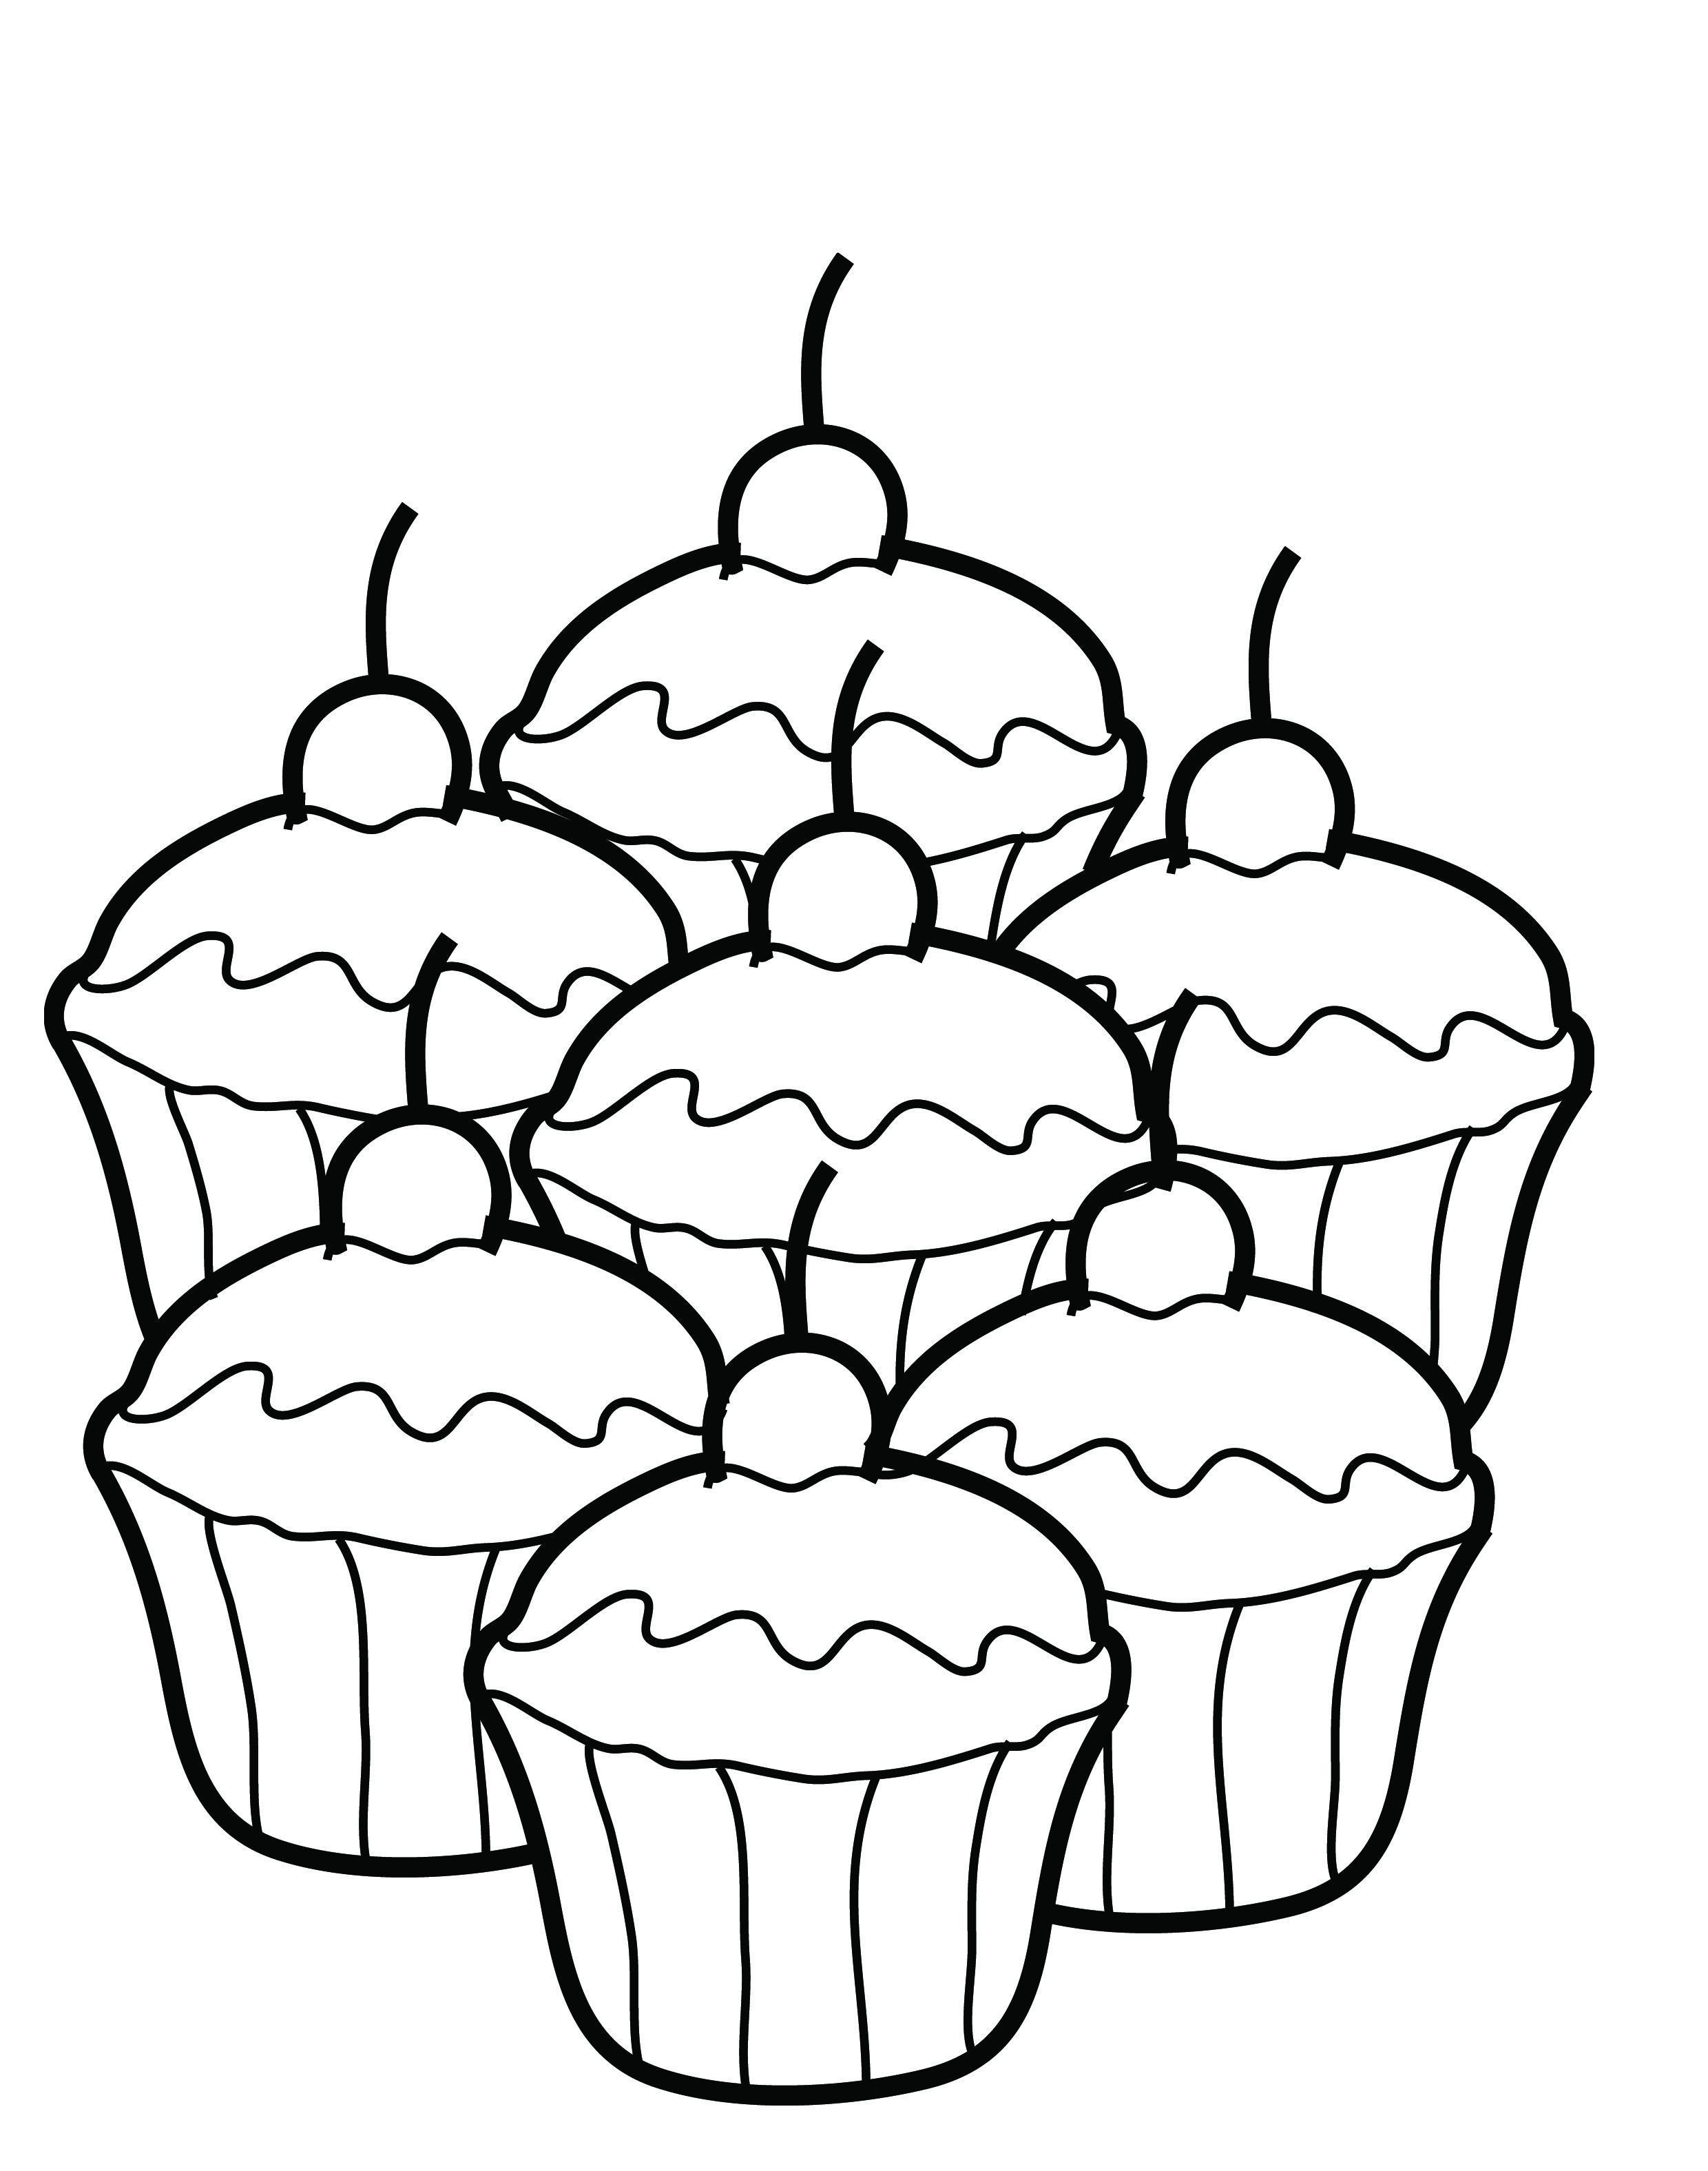 free printable cupcake coloring pages for kids - Pichers For Kids